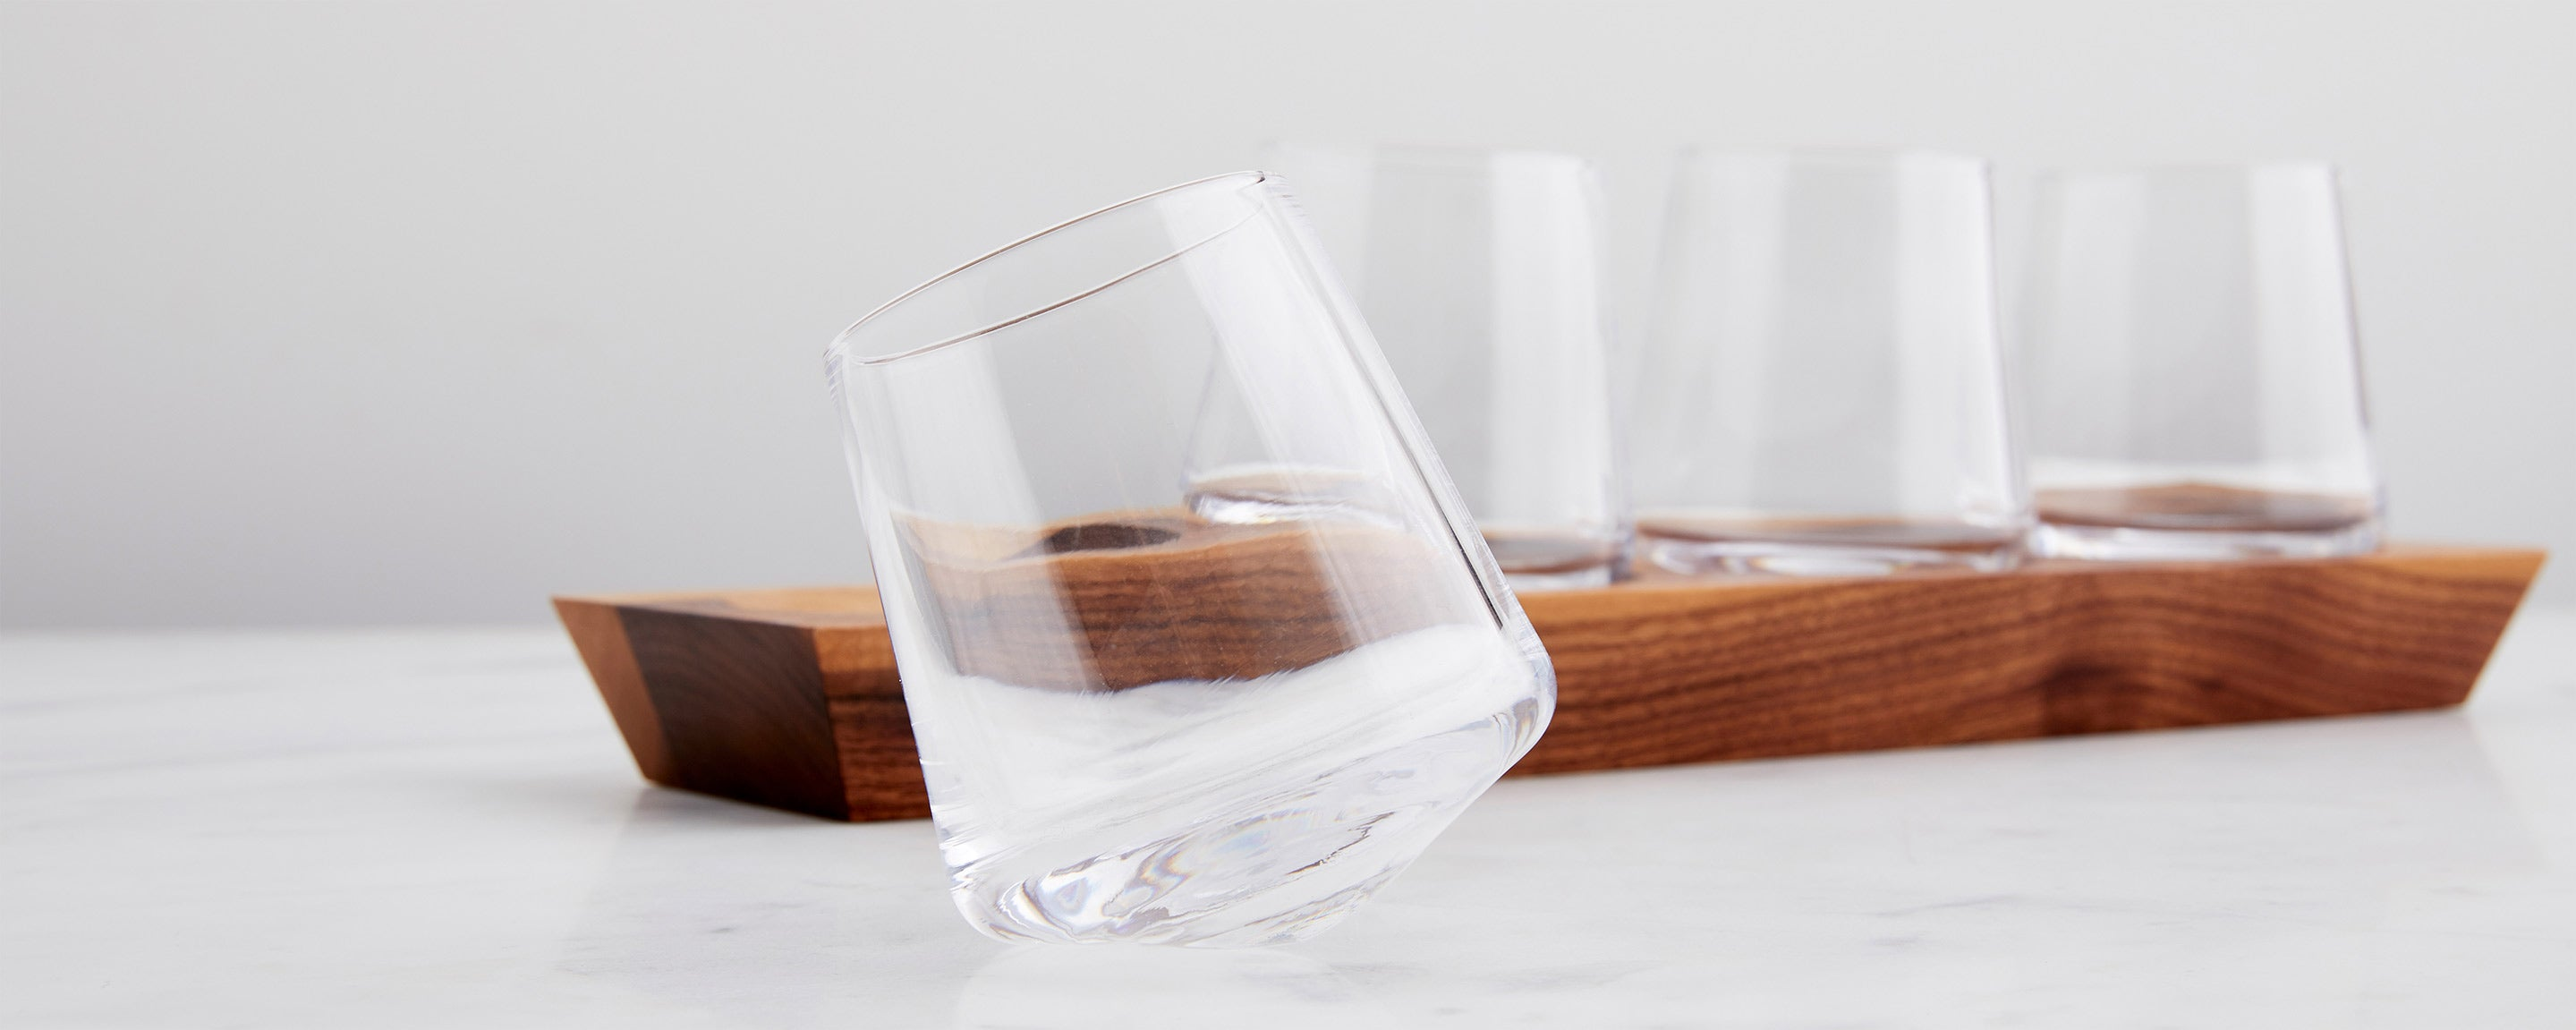 ludlow whiskey glass set by simon pearce